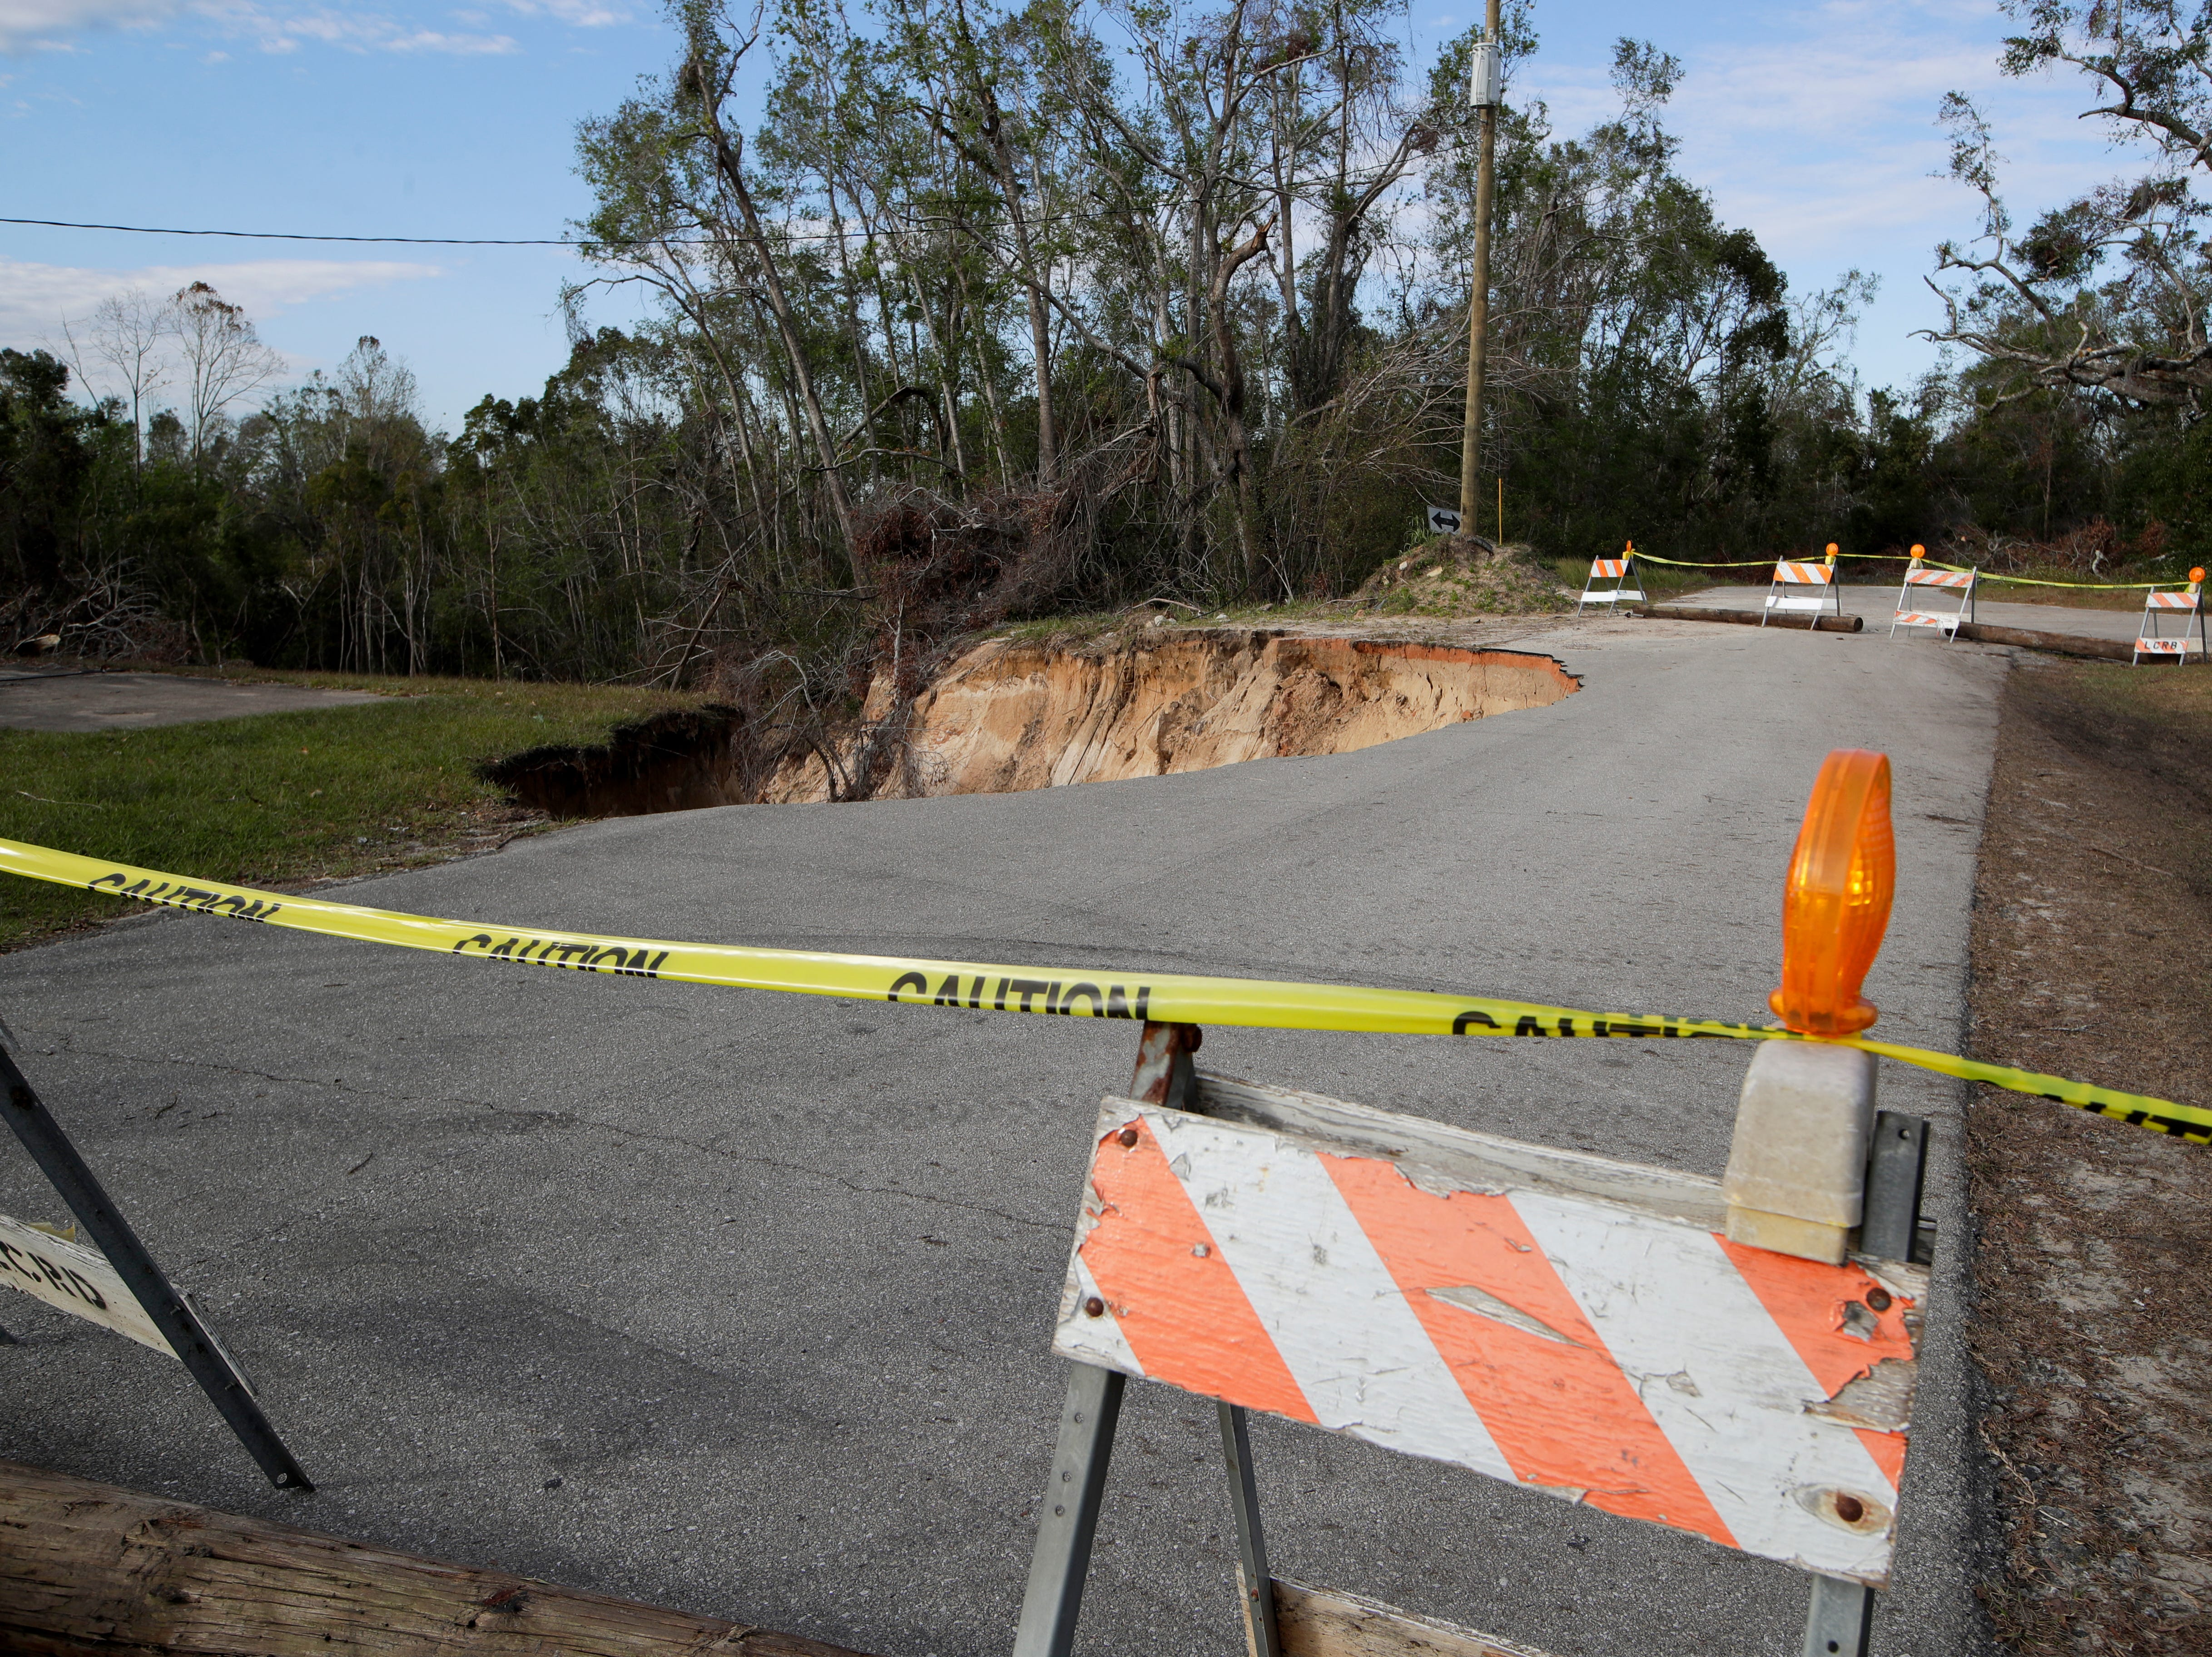 The sinkhole that has swallowed nearly half of Virginia G. Weaver Street in Bristol, Fla. is partly blocked off by wooden poles and caution tape Friday, Nov. 30, 2018.